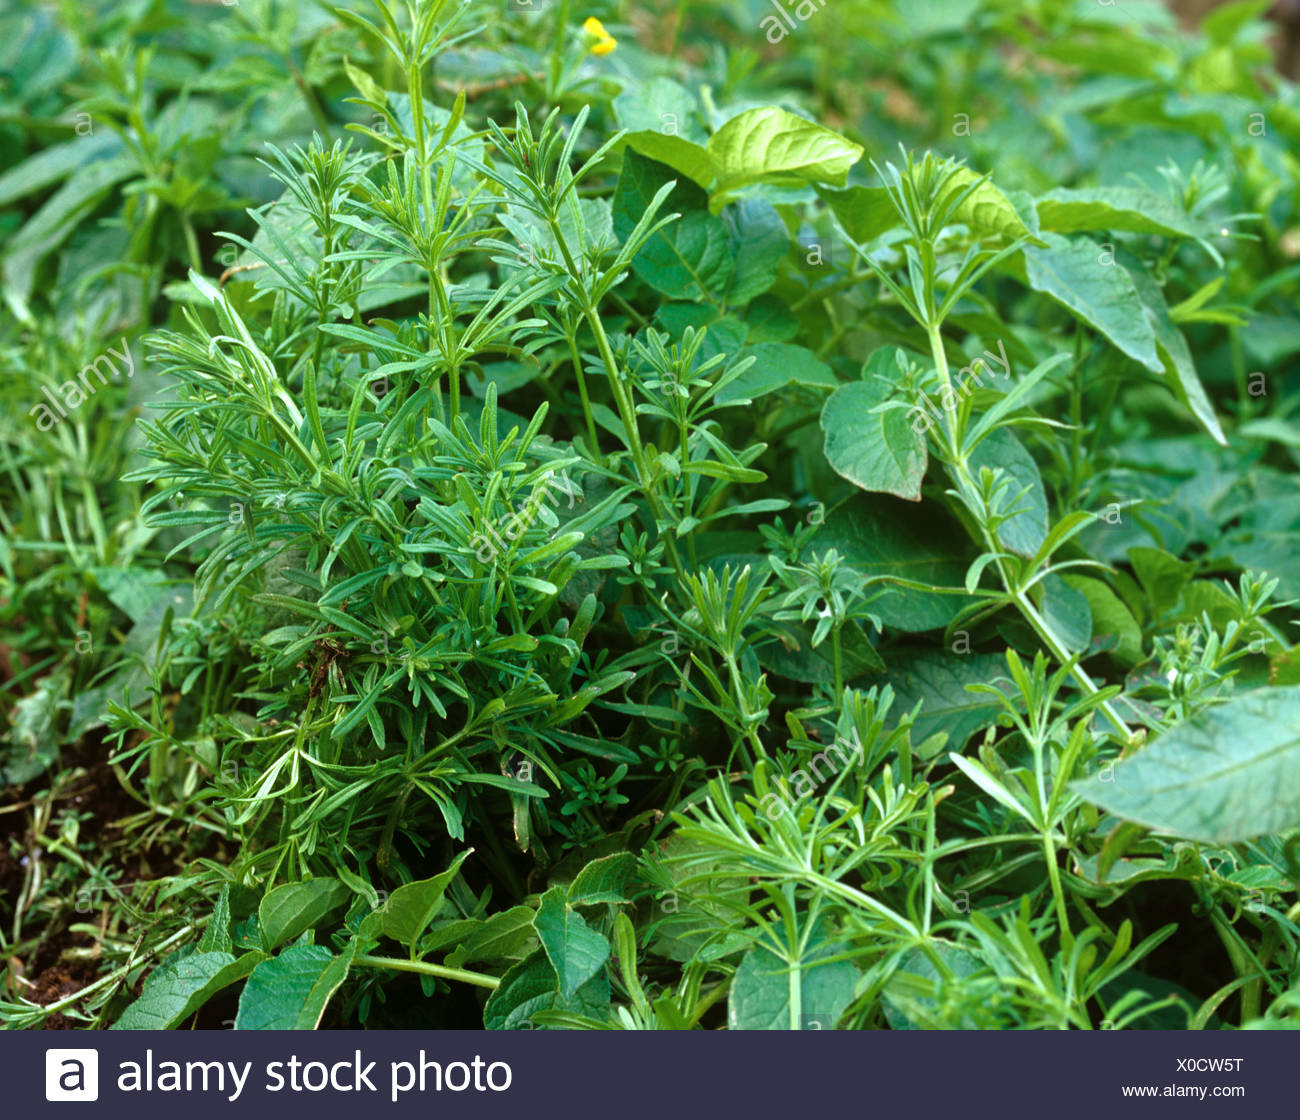 Cleavers Galium aparine, annual arable weed in a maturing potato crop - Stock Image